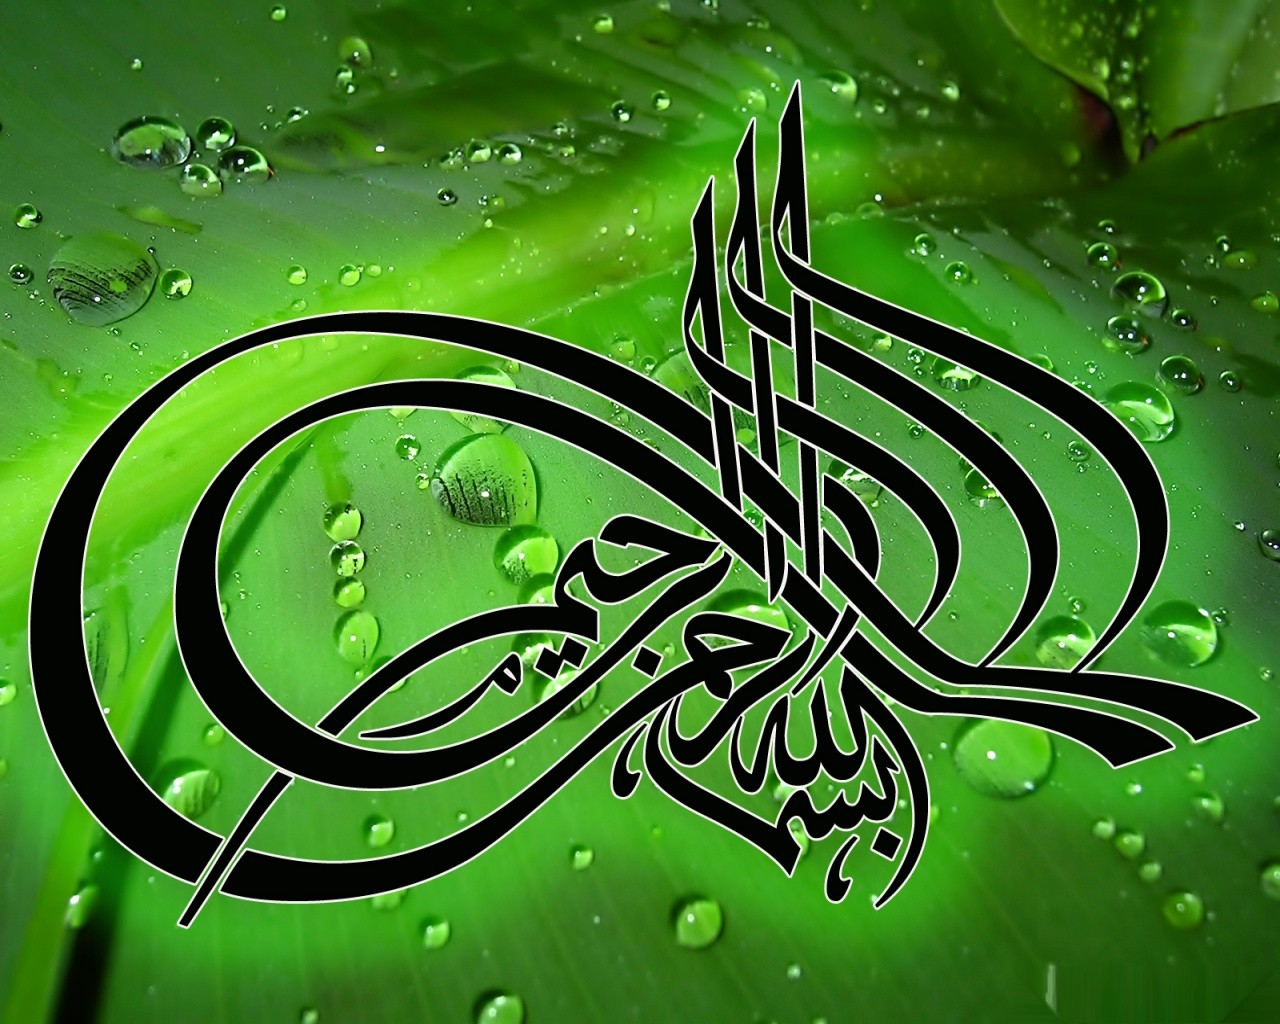 Islamic High Quality Wallpapers: December 2012